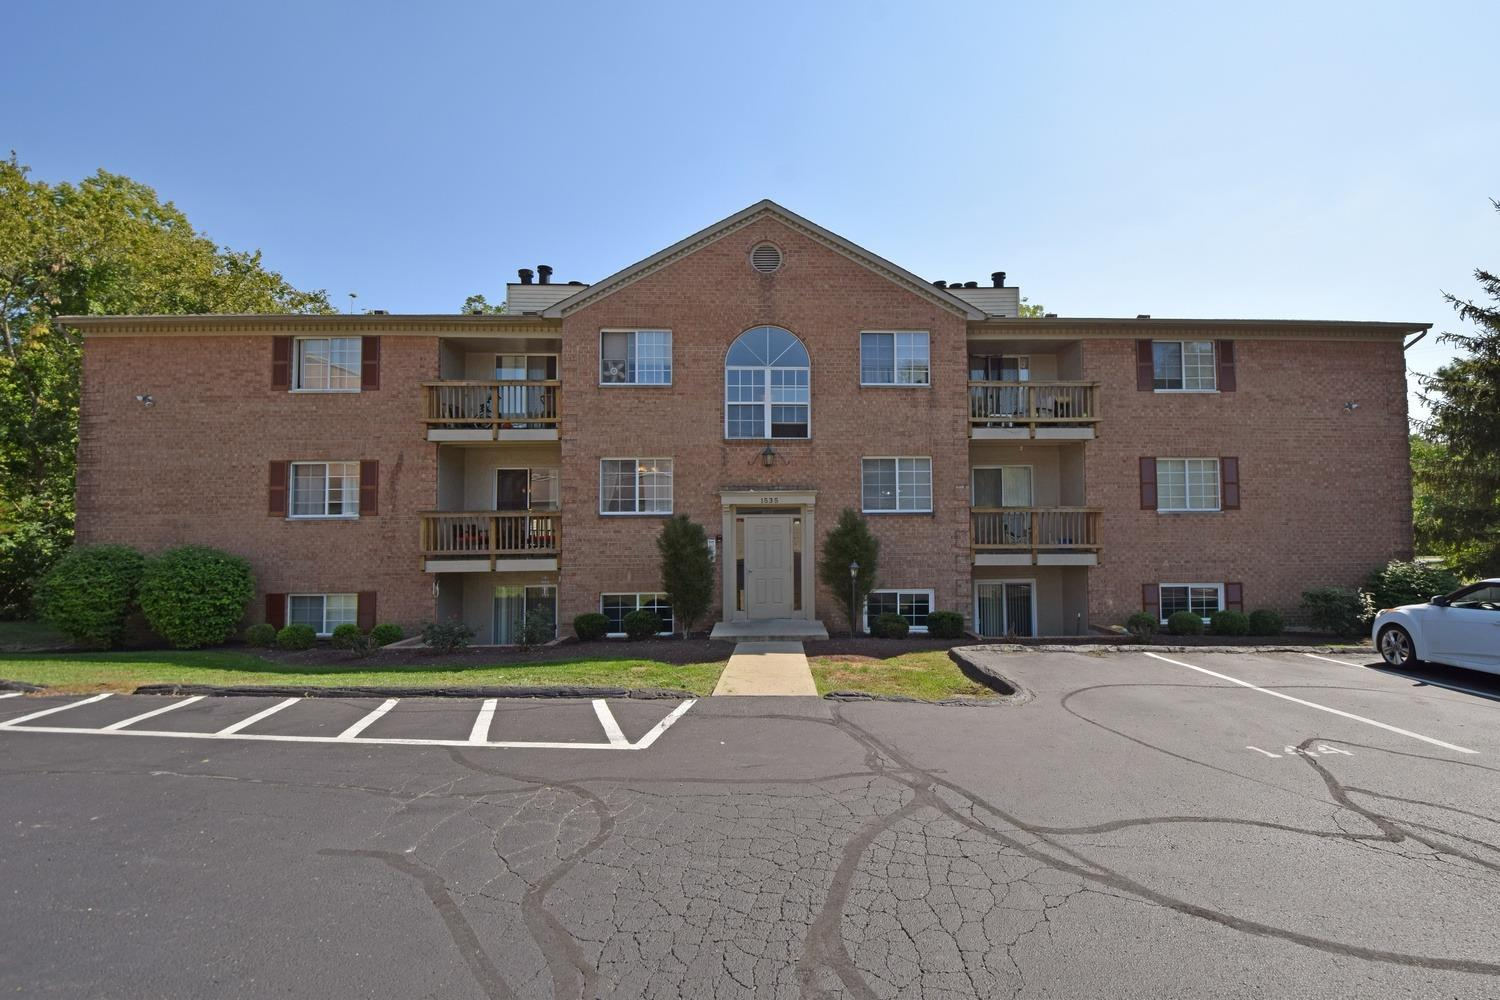 Property for sale at 1535 Gelhot Drive Unit: 145, Fairfield,  Ohio 45014